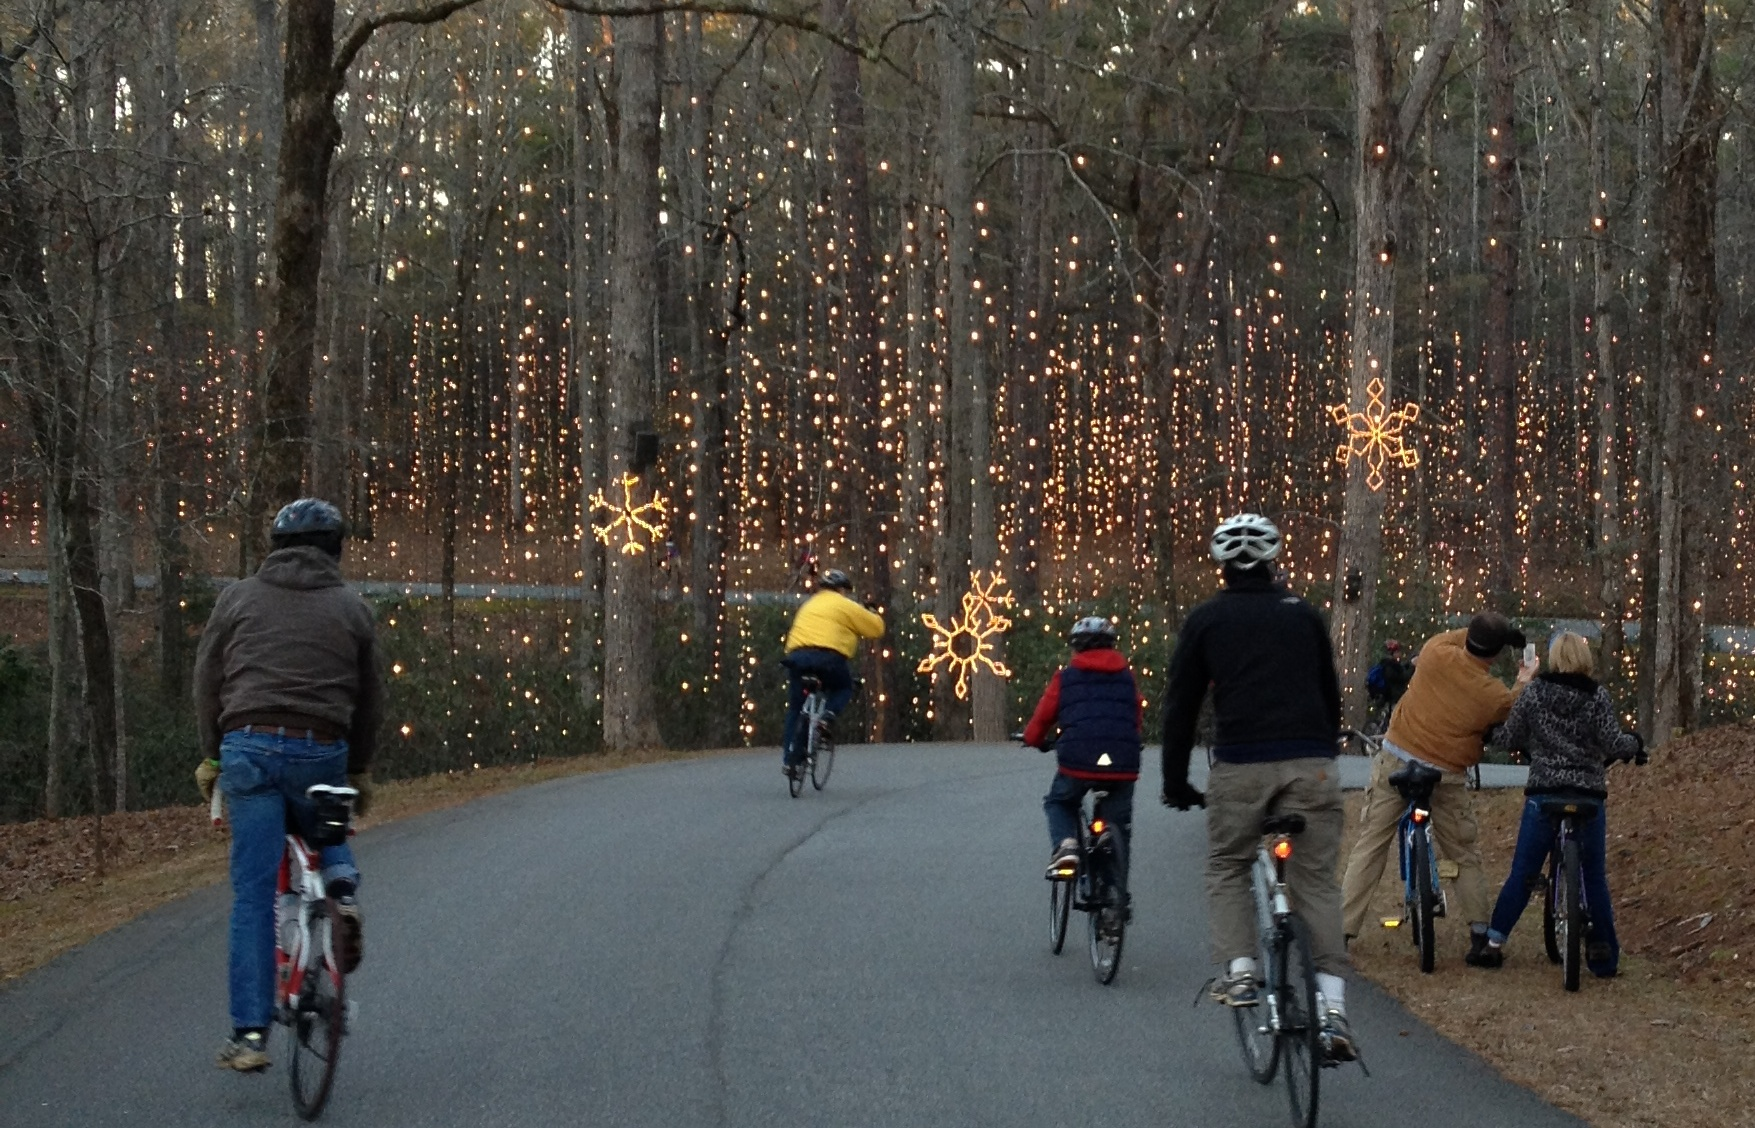 Tickets For Fantasy In Lights Bicycle Night At Callaway Gardens In Pine